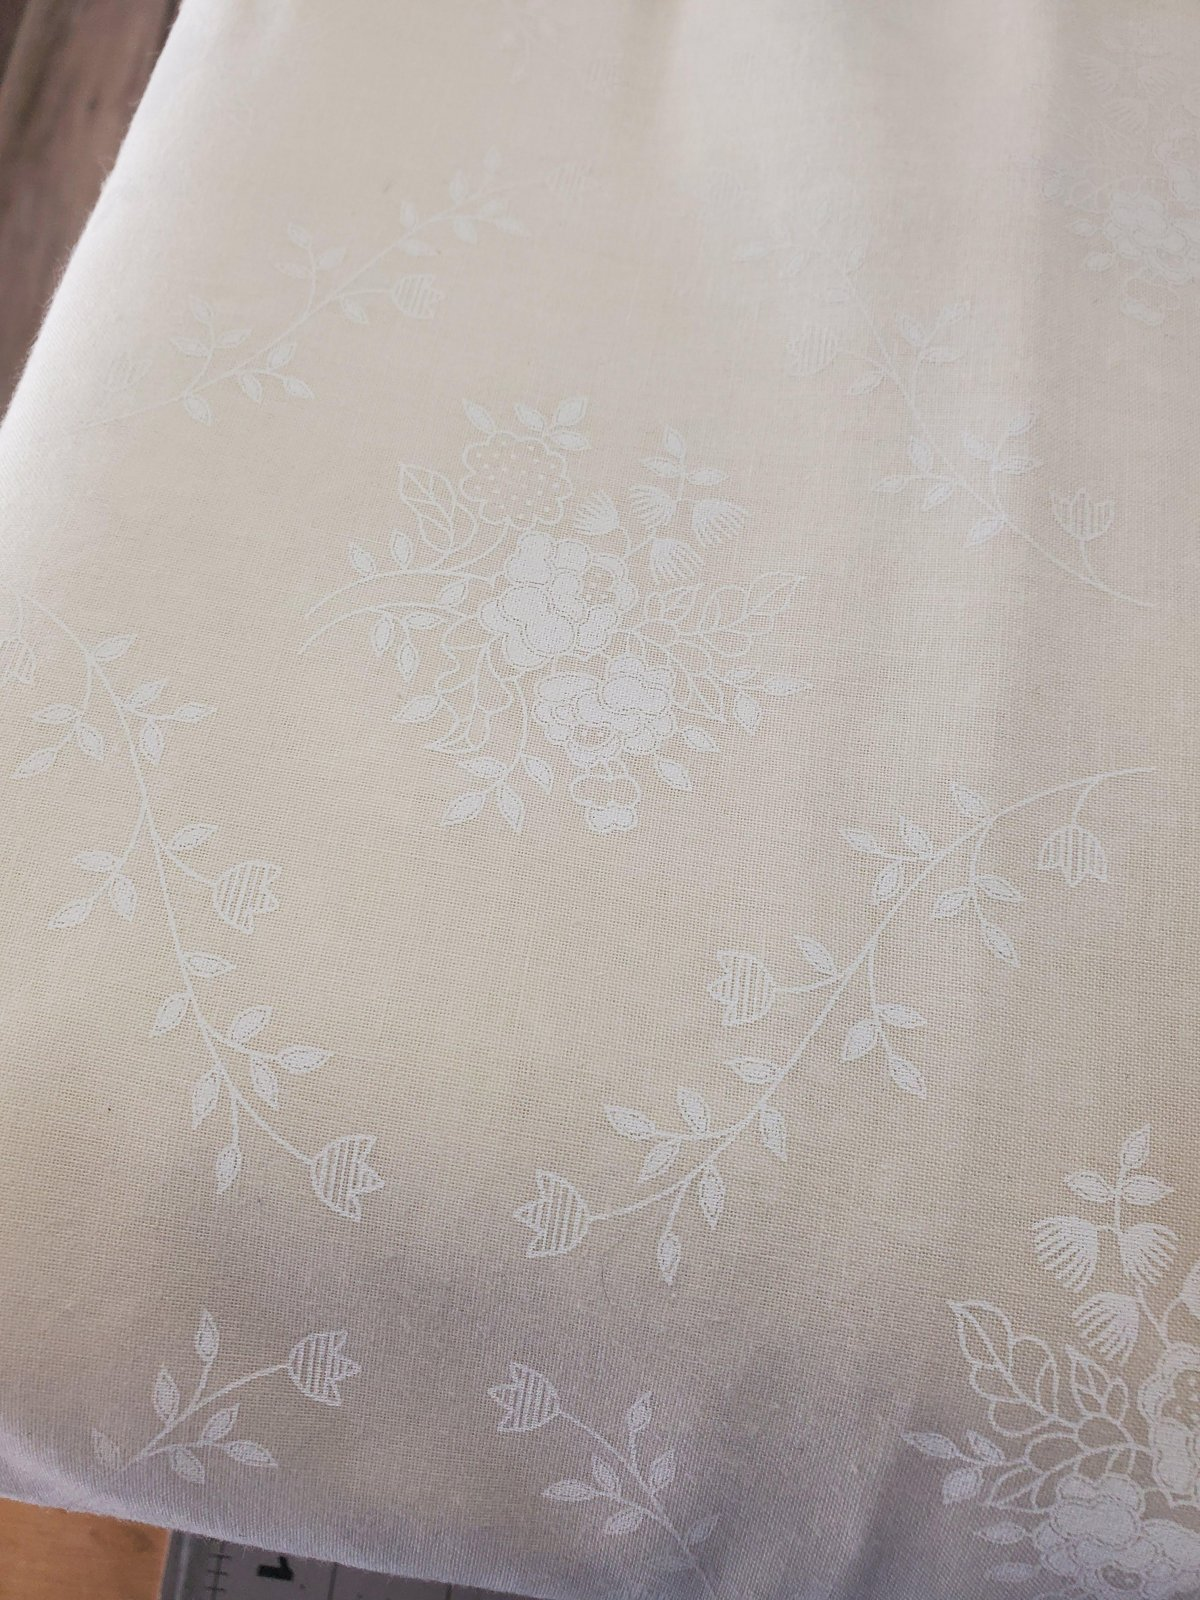 3 Yard Backing Piece: 108 Wide Vintage Bouquet White on Off-White a single 3 yard piece